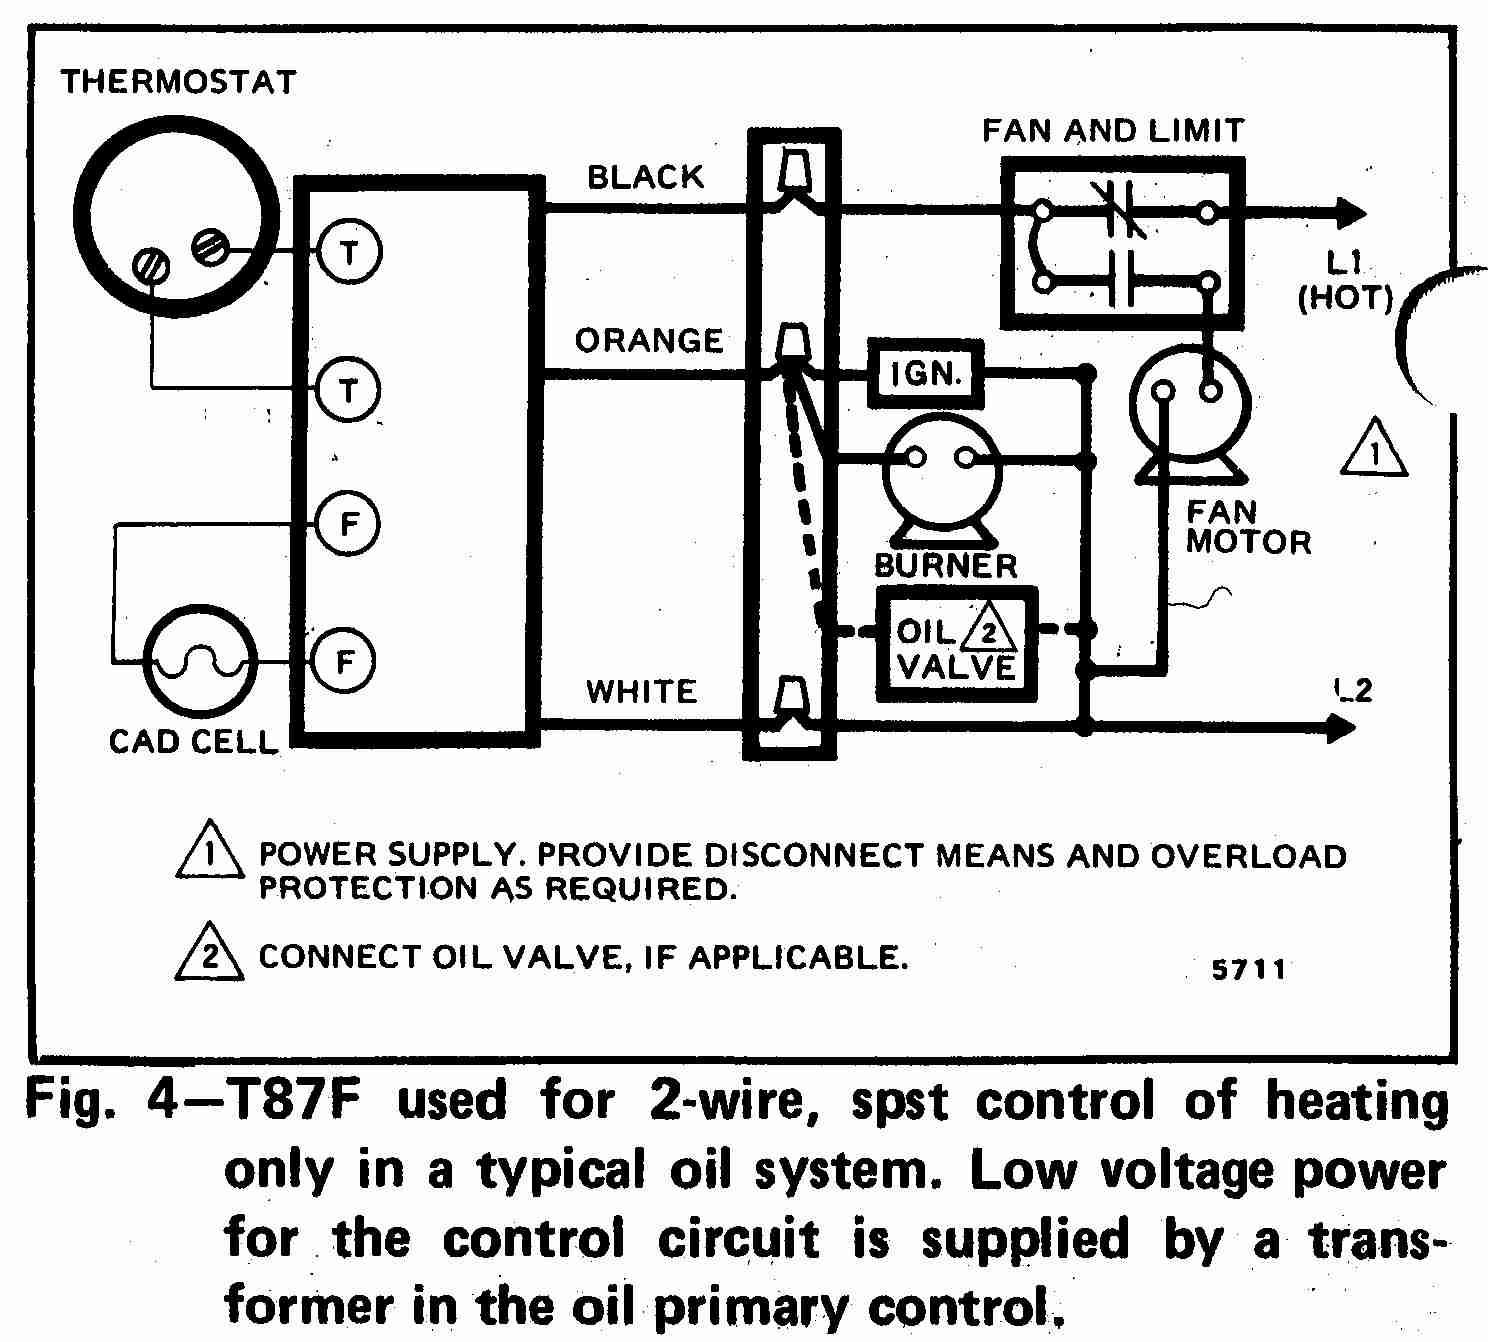 hight resolution of room thermostat wiring diagrams for hvac systems hvac wiring diagrams troubleshooting for ruud honeywell t87f thermostat